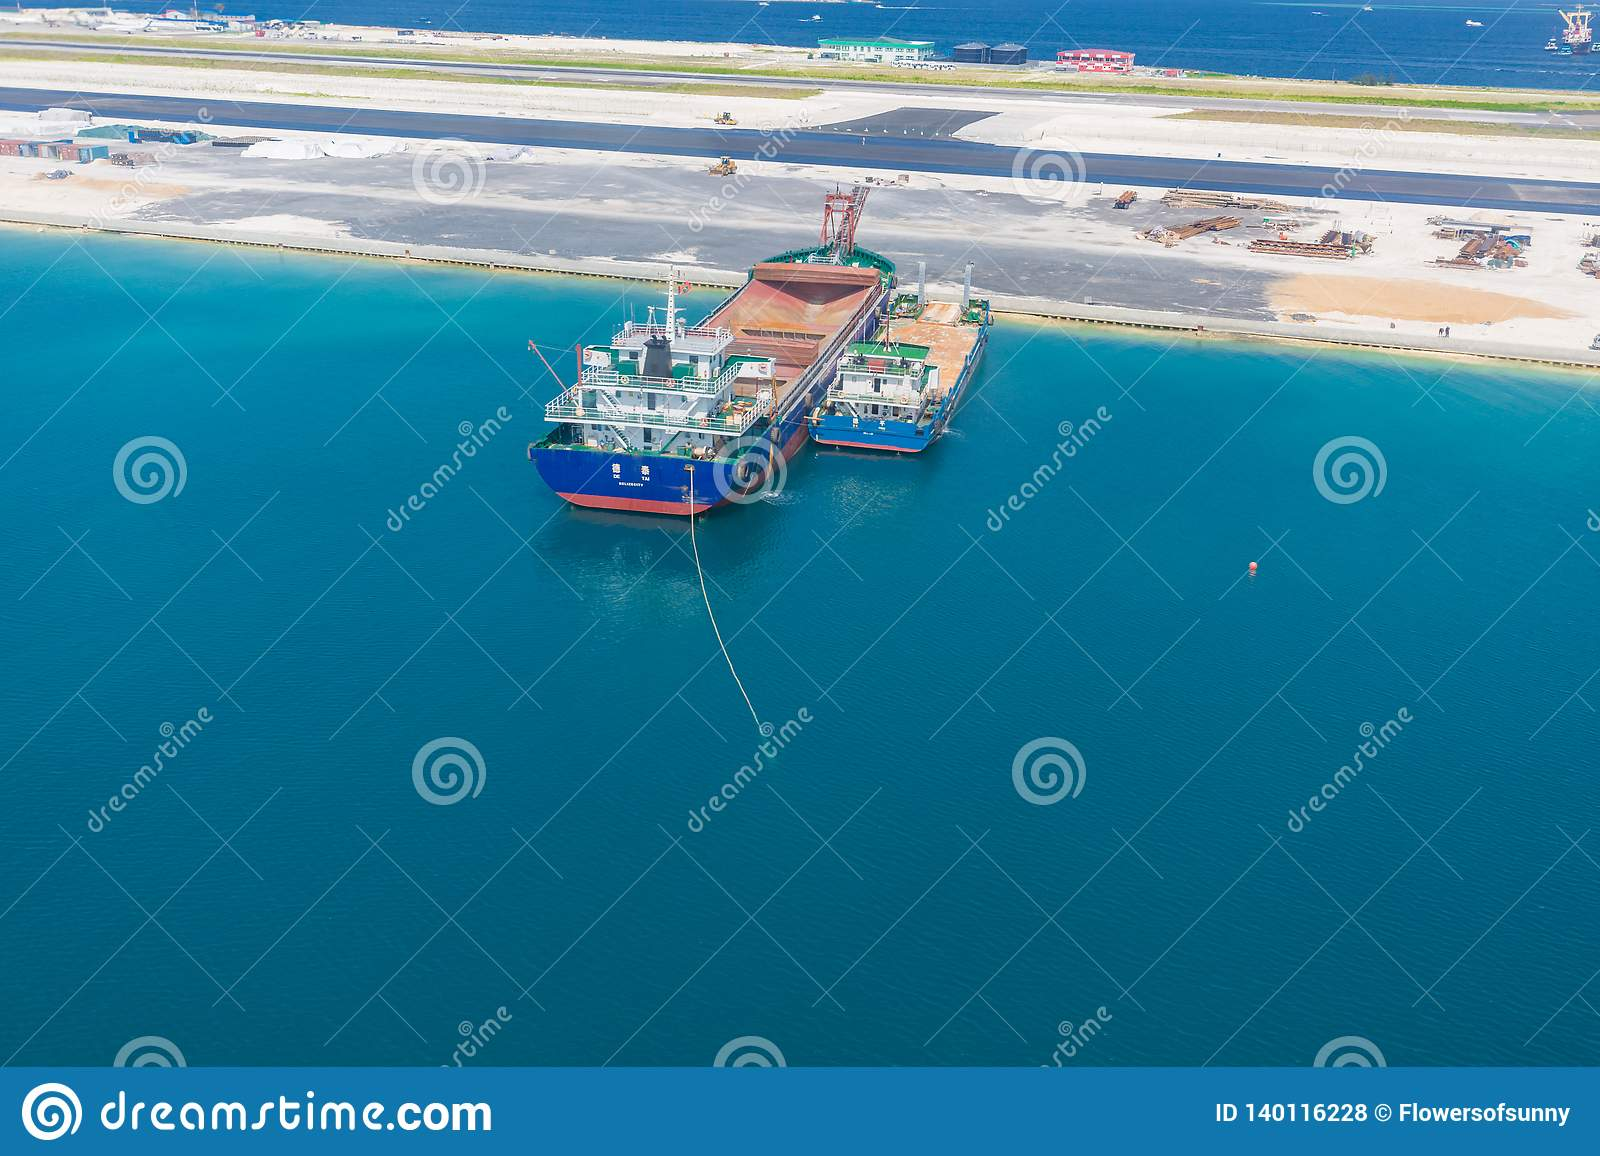 Maldives Island Capital City Male Under Construction And